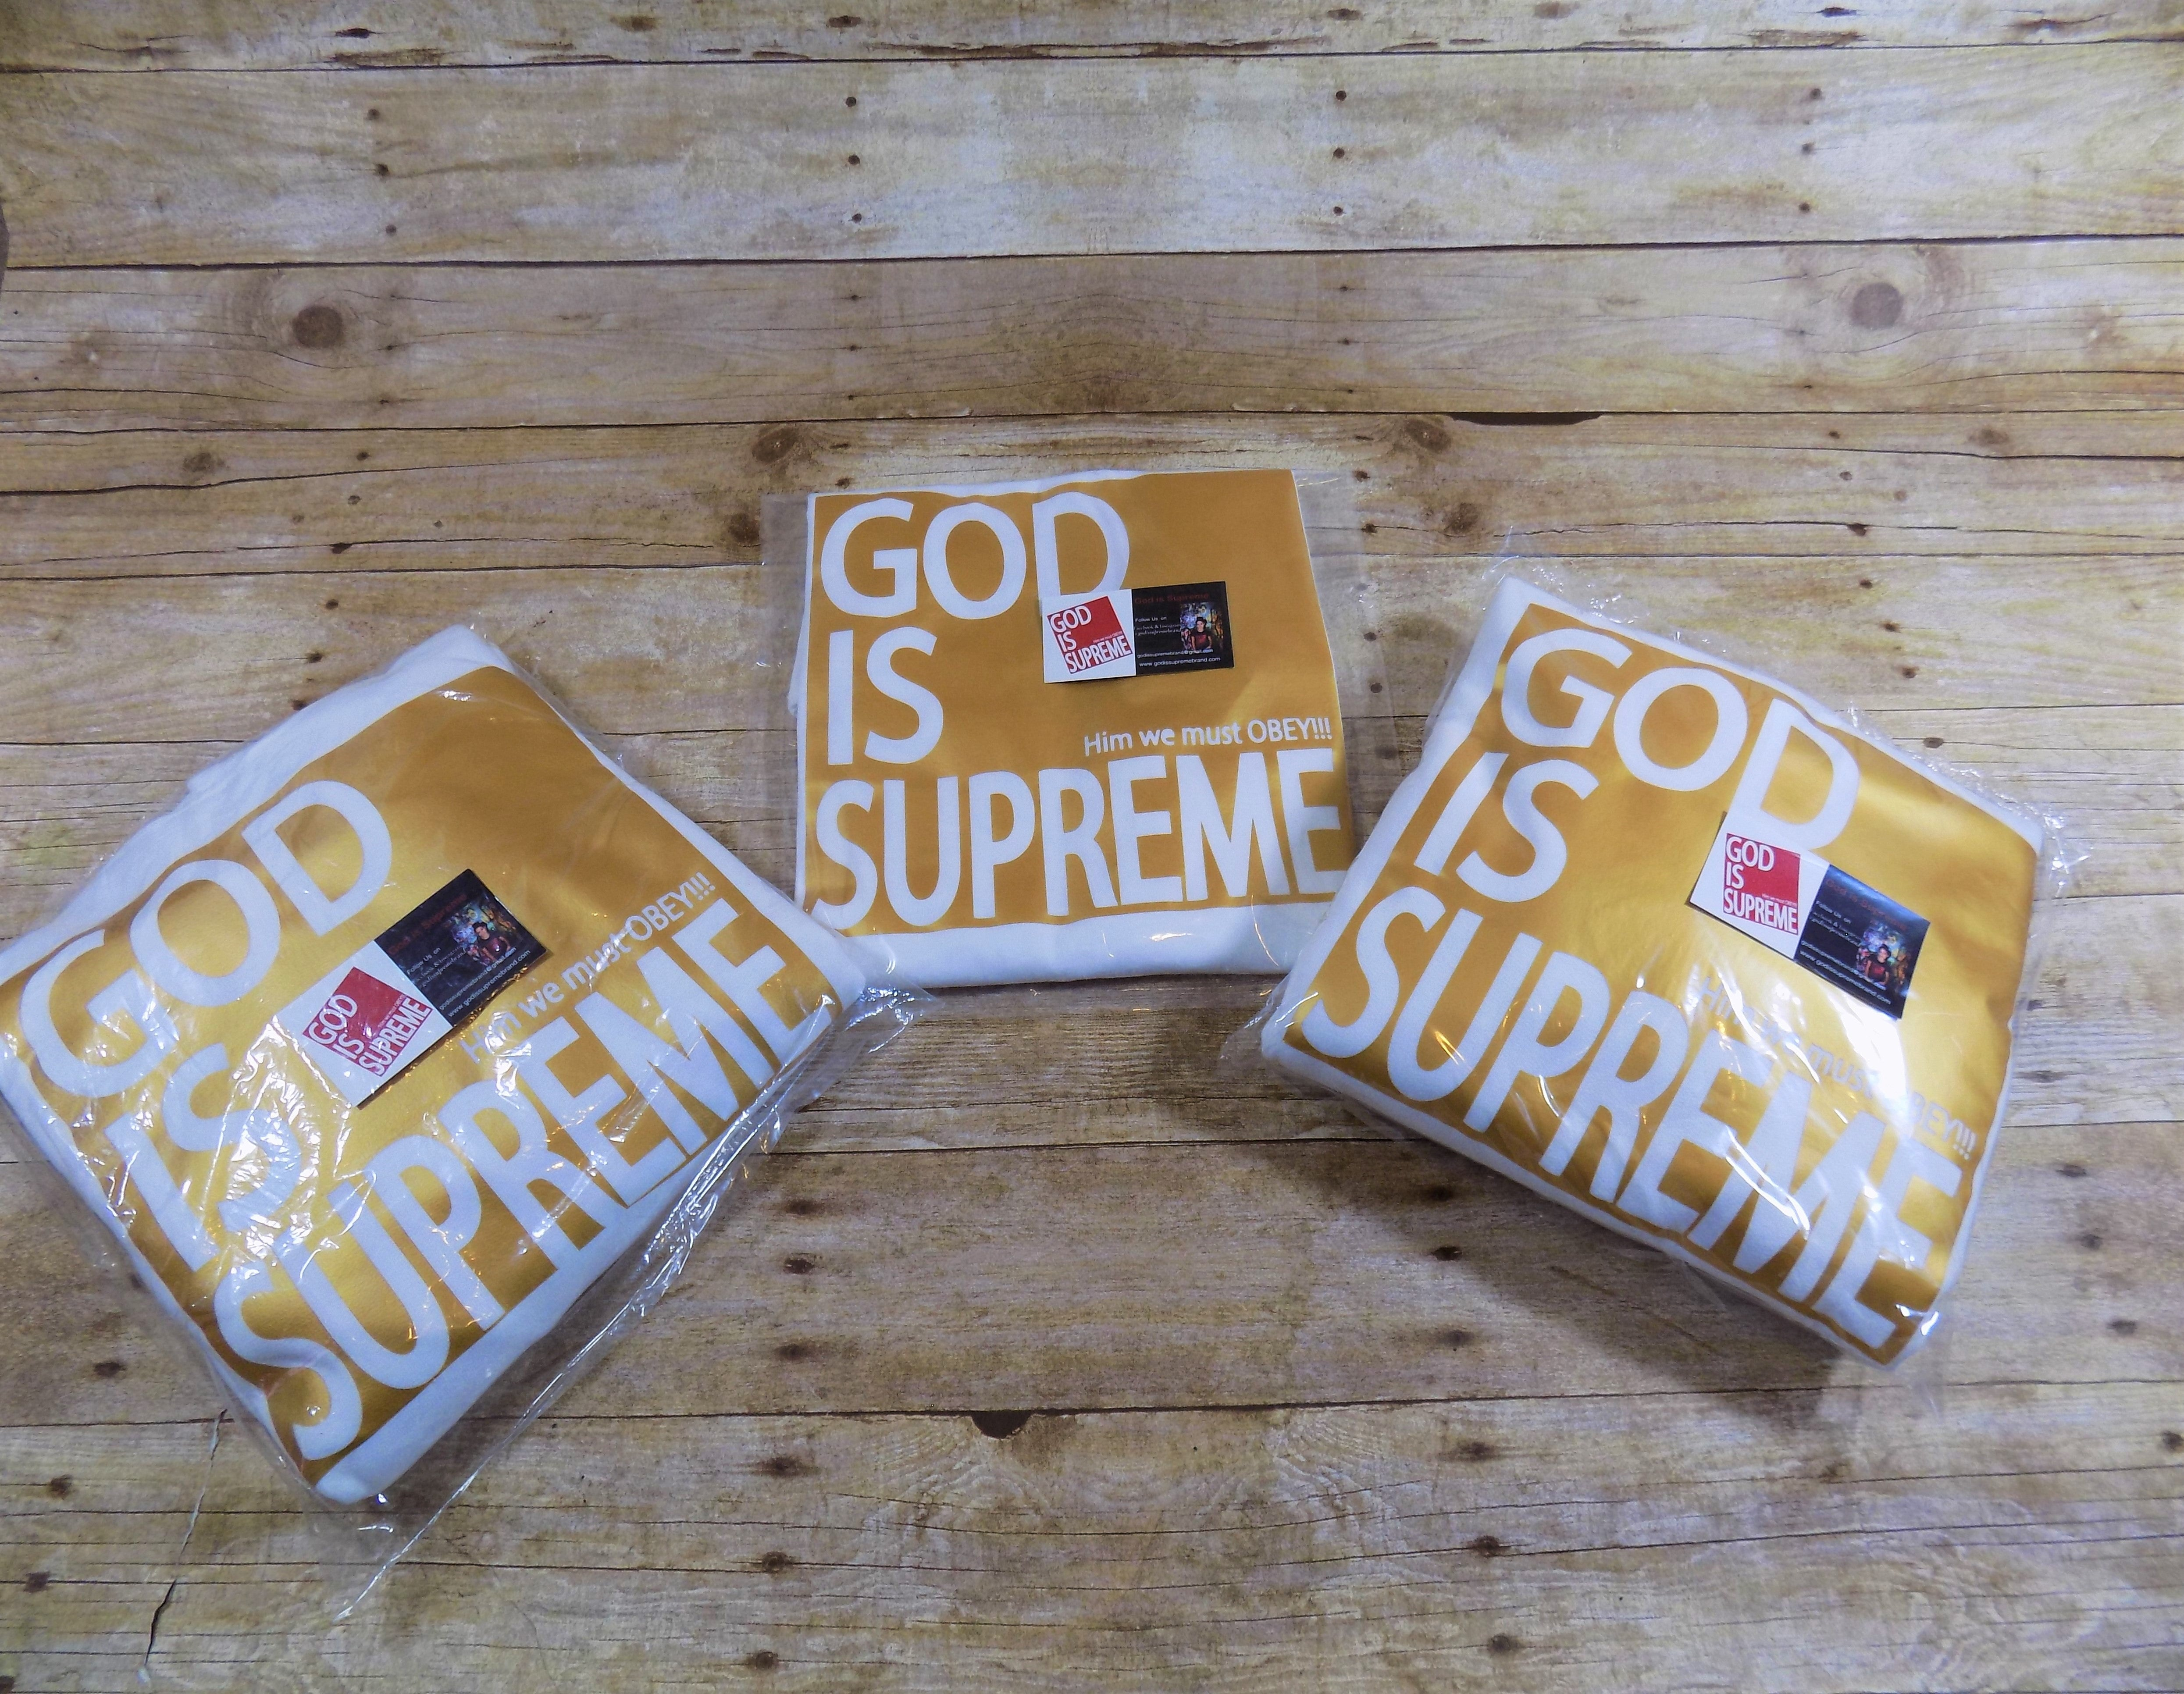 God is Supreme Gold Box / White T-shirt - God Is Supreme